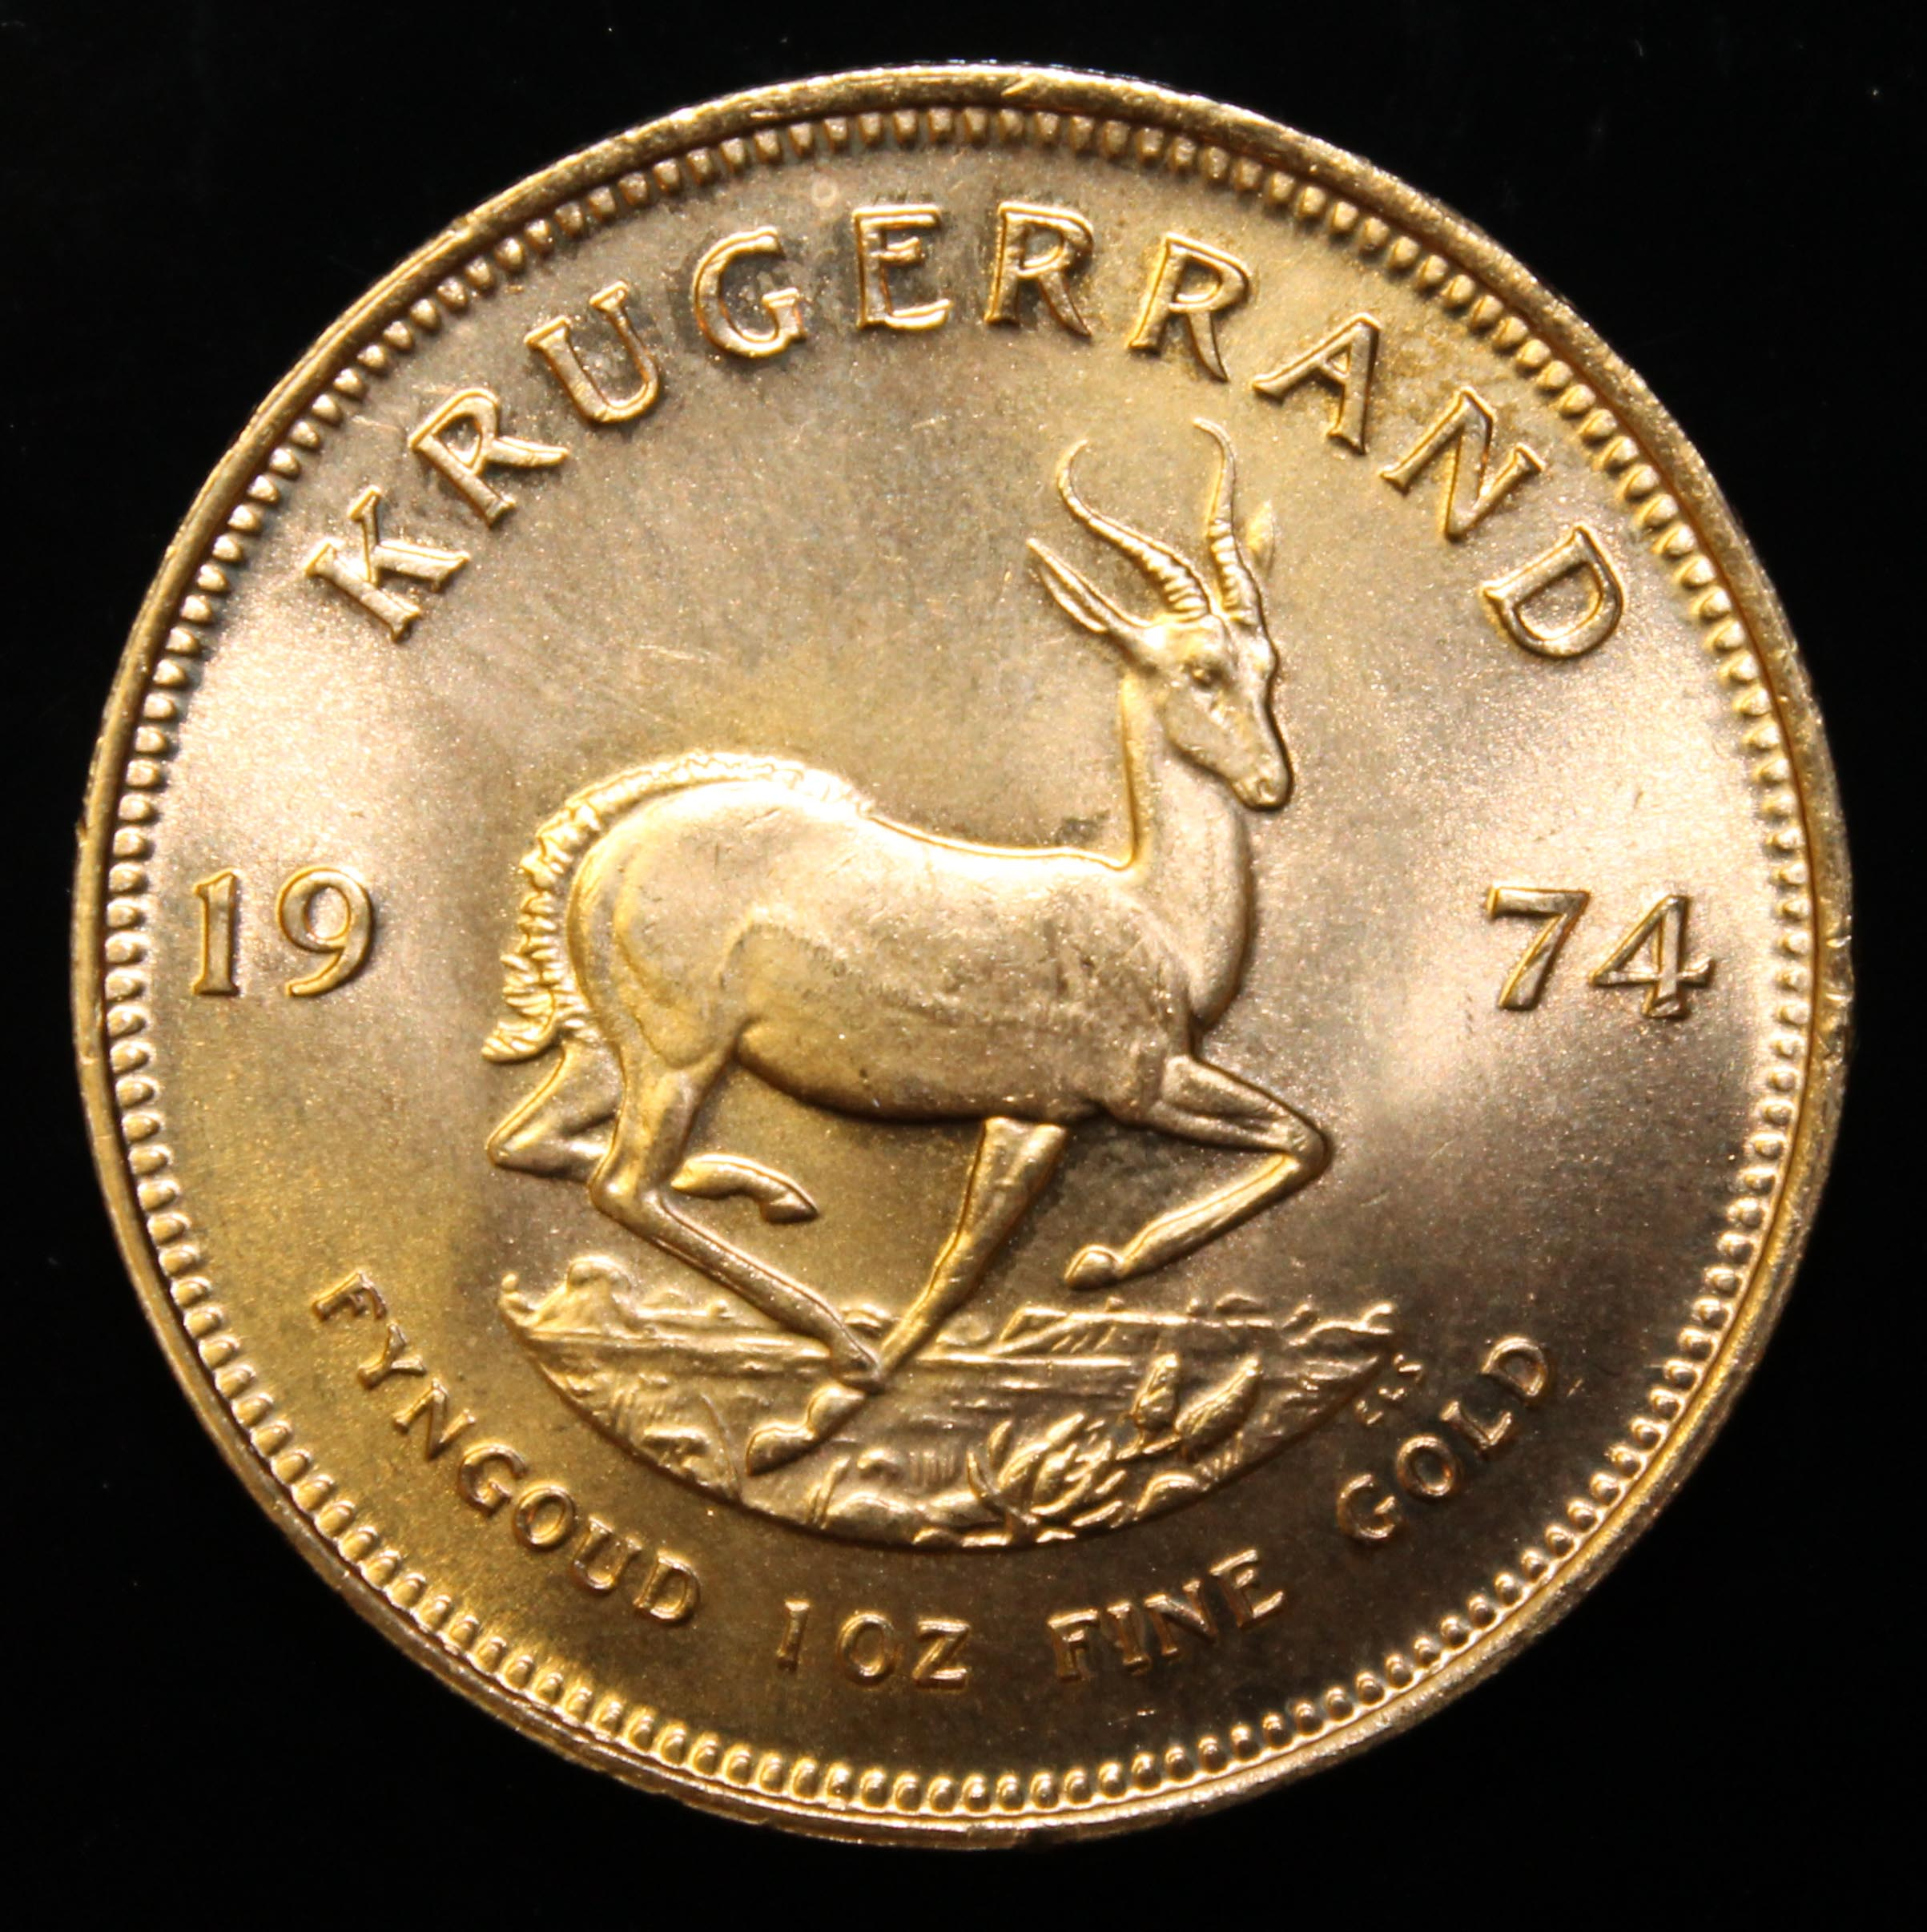 South Africa, 1974 Krugerrand, 1 oz. fine gold (91.67%) ONLY 10% BUYER'S PREMIUM (INCLUSIVE OF - Image 2 of 2